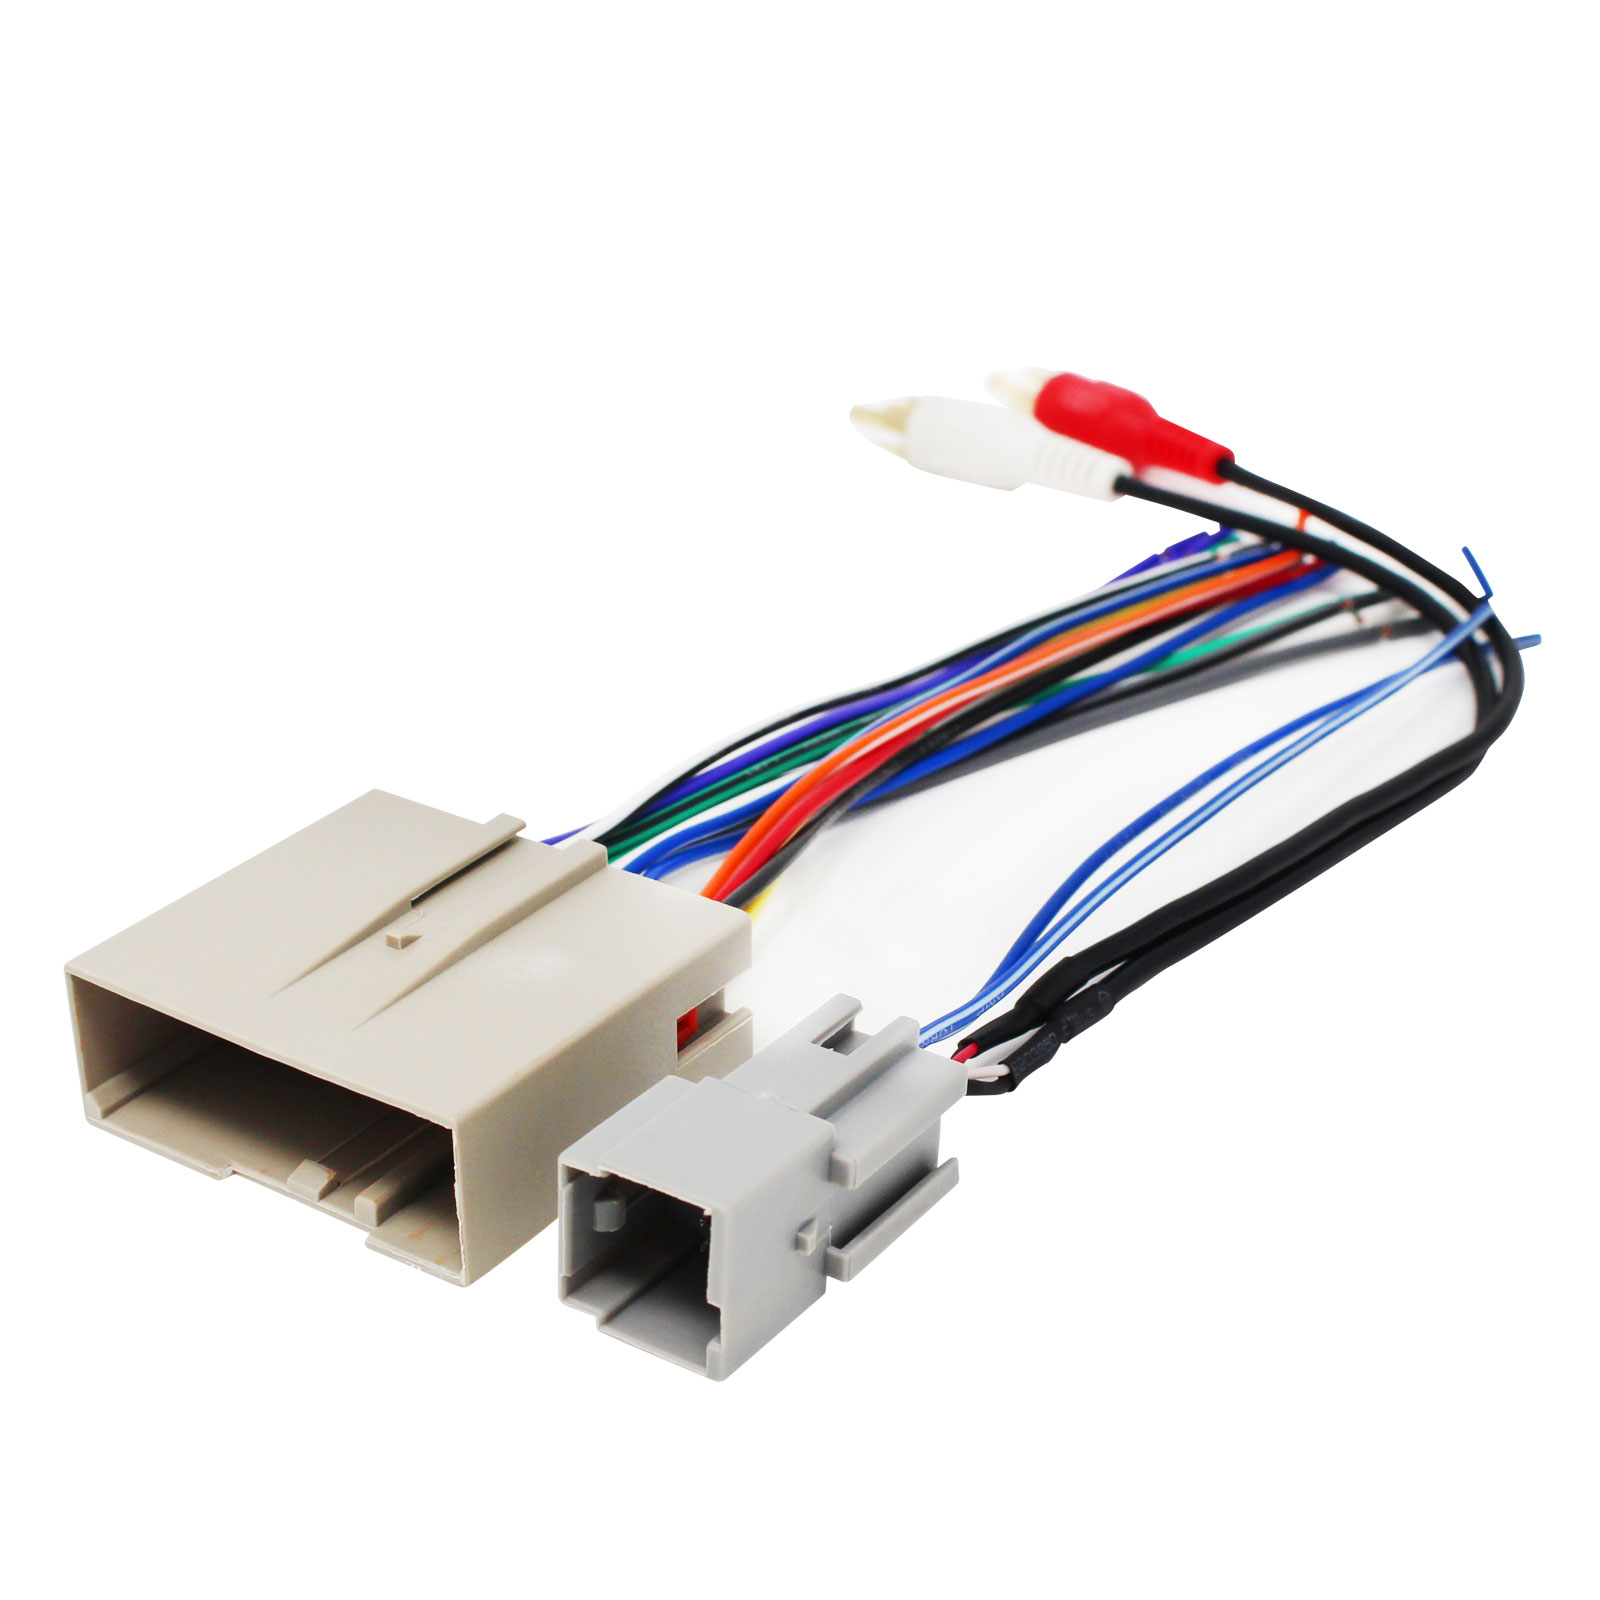 replacement radio wiring harness for 2005 ford freestyle se wagon 4 [ 1600 x 1600 Pixel ]